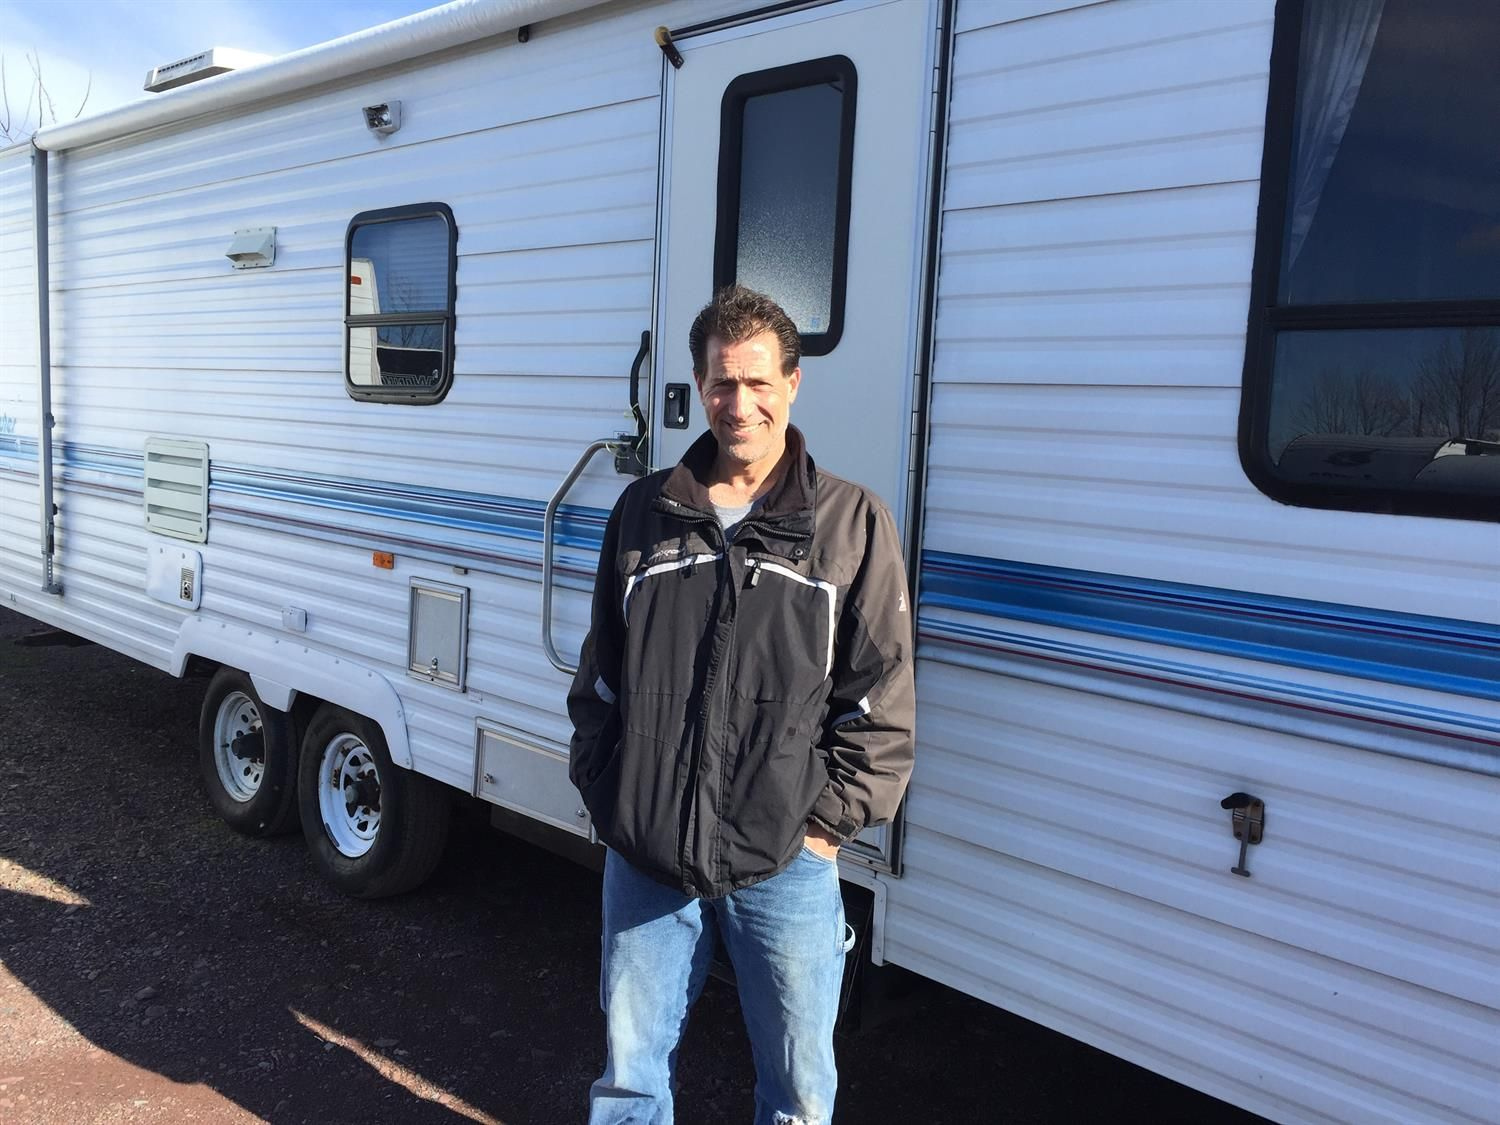 Joe S New 1996 Fleetwood Prowler Congratulations And Best Wishes From Fretz Rv And Luke Wilson Congratulations And Best Wishes Recreational Vehicles Fleetwood